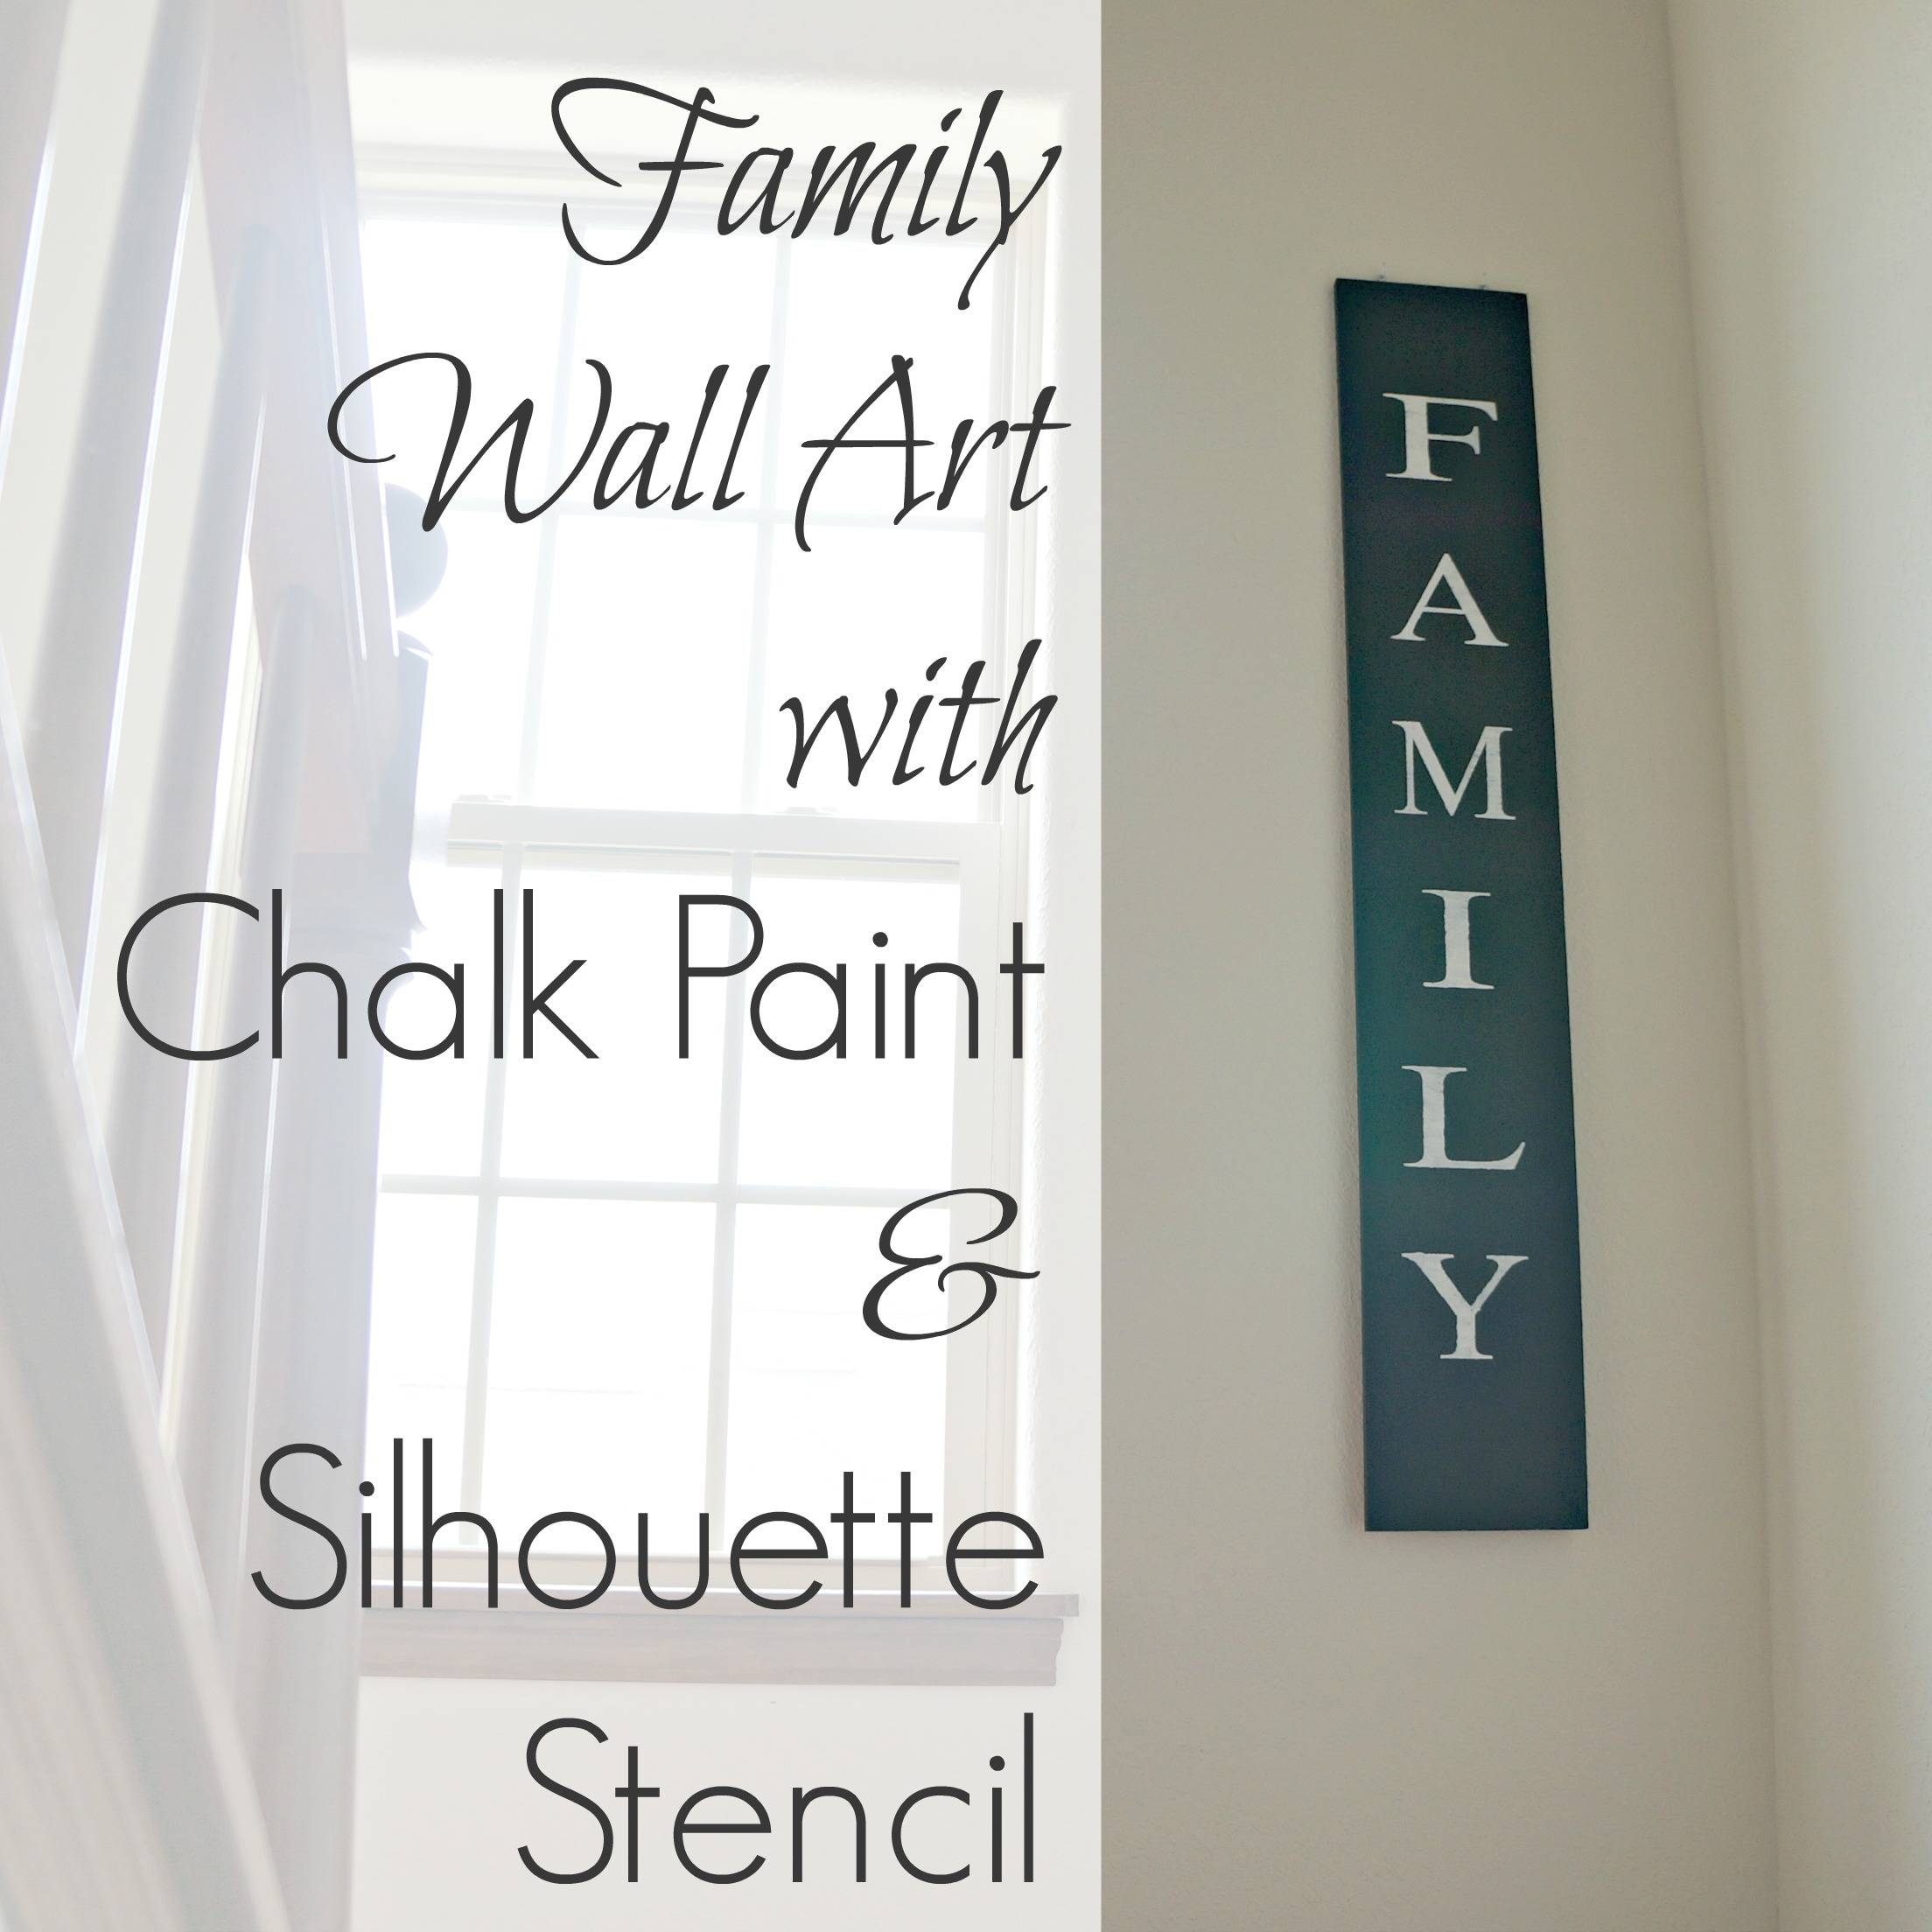 Family Wall Art With Chalk Paint And Silhouette Stencil – Creative Inside Newest Family Photo Wall Art (View 18 of 25)